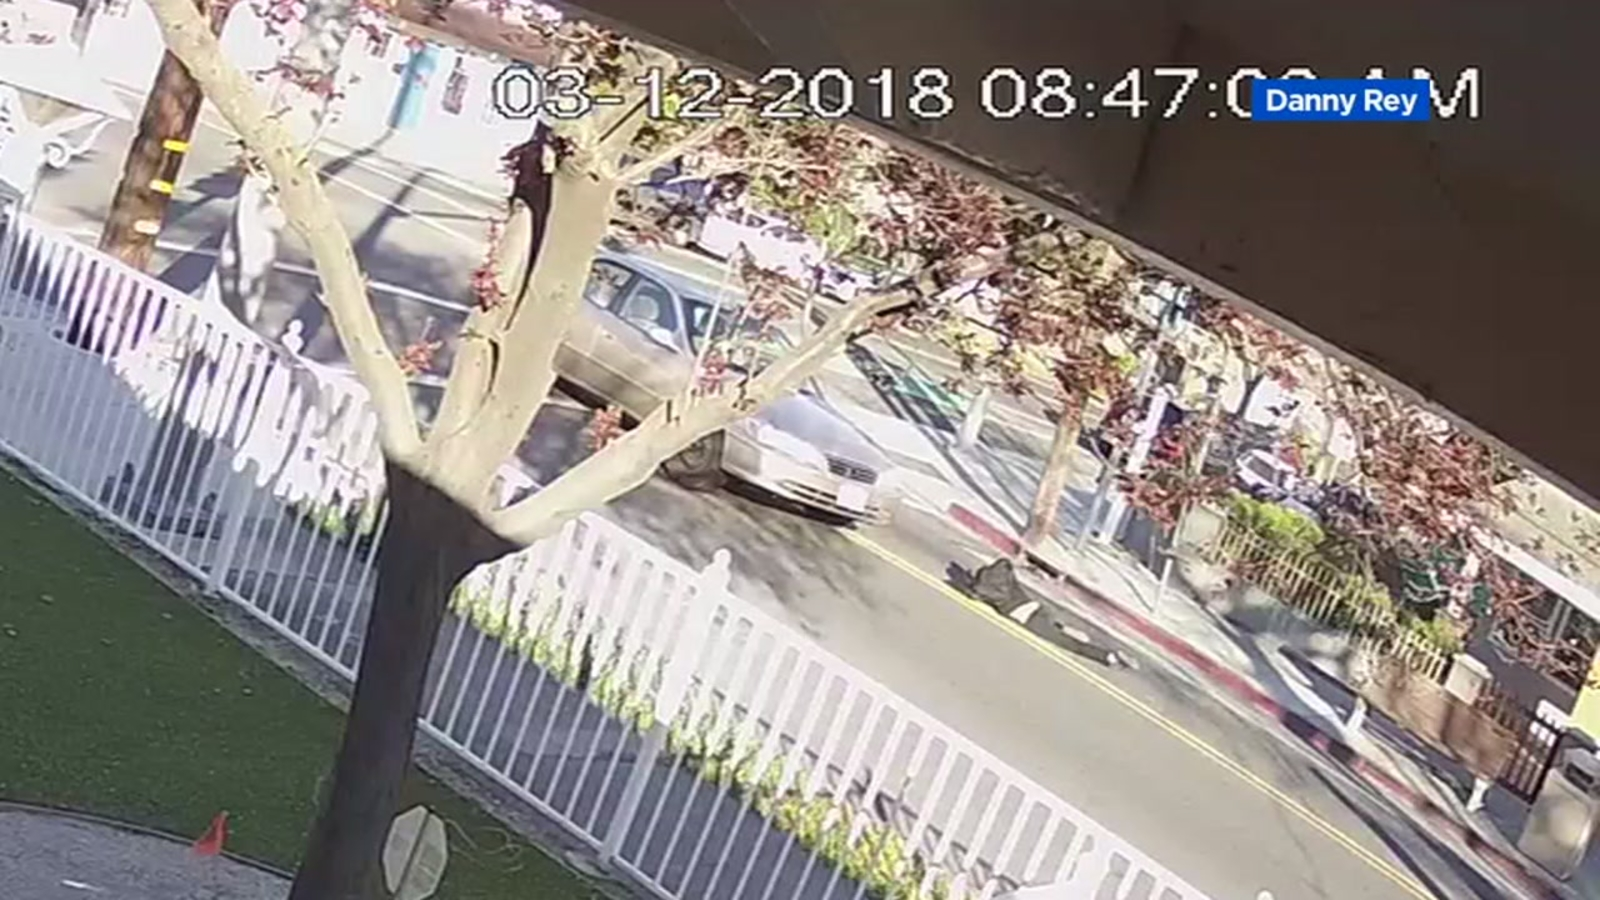 Hit and run of girl in crosswalk in San Jose caught on video